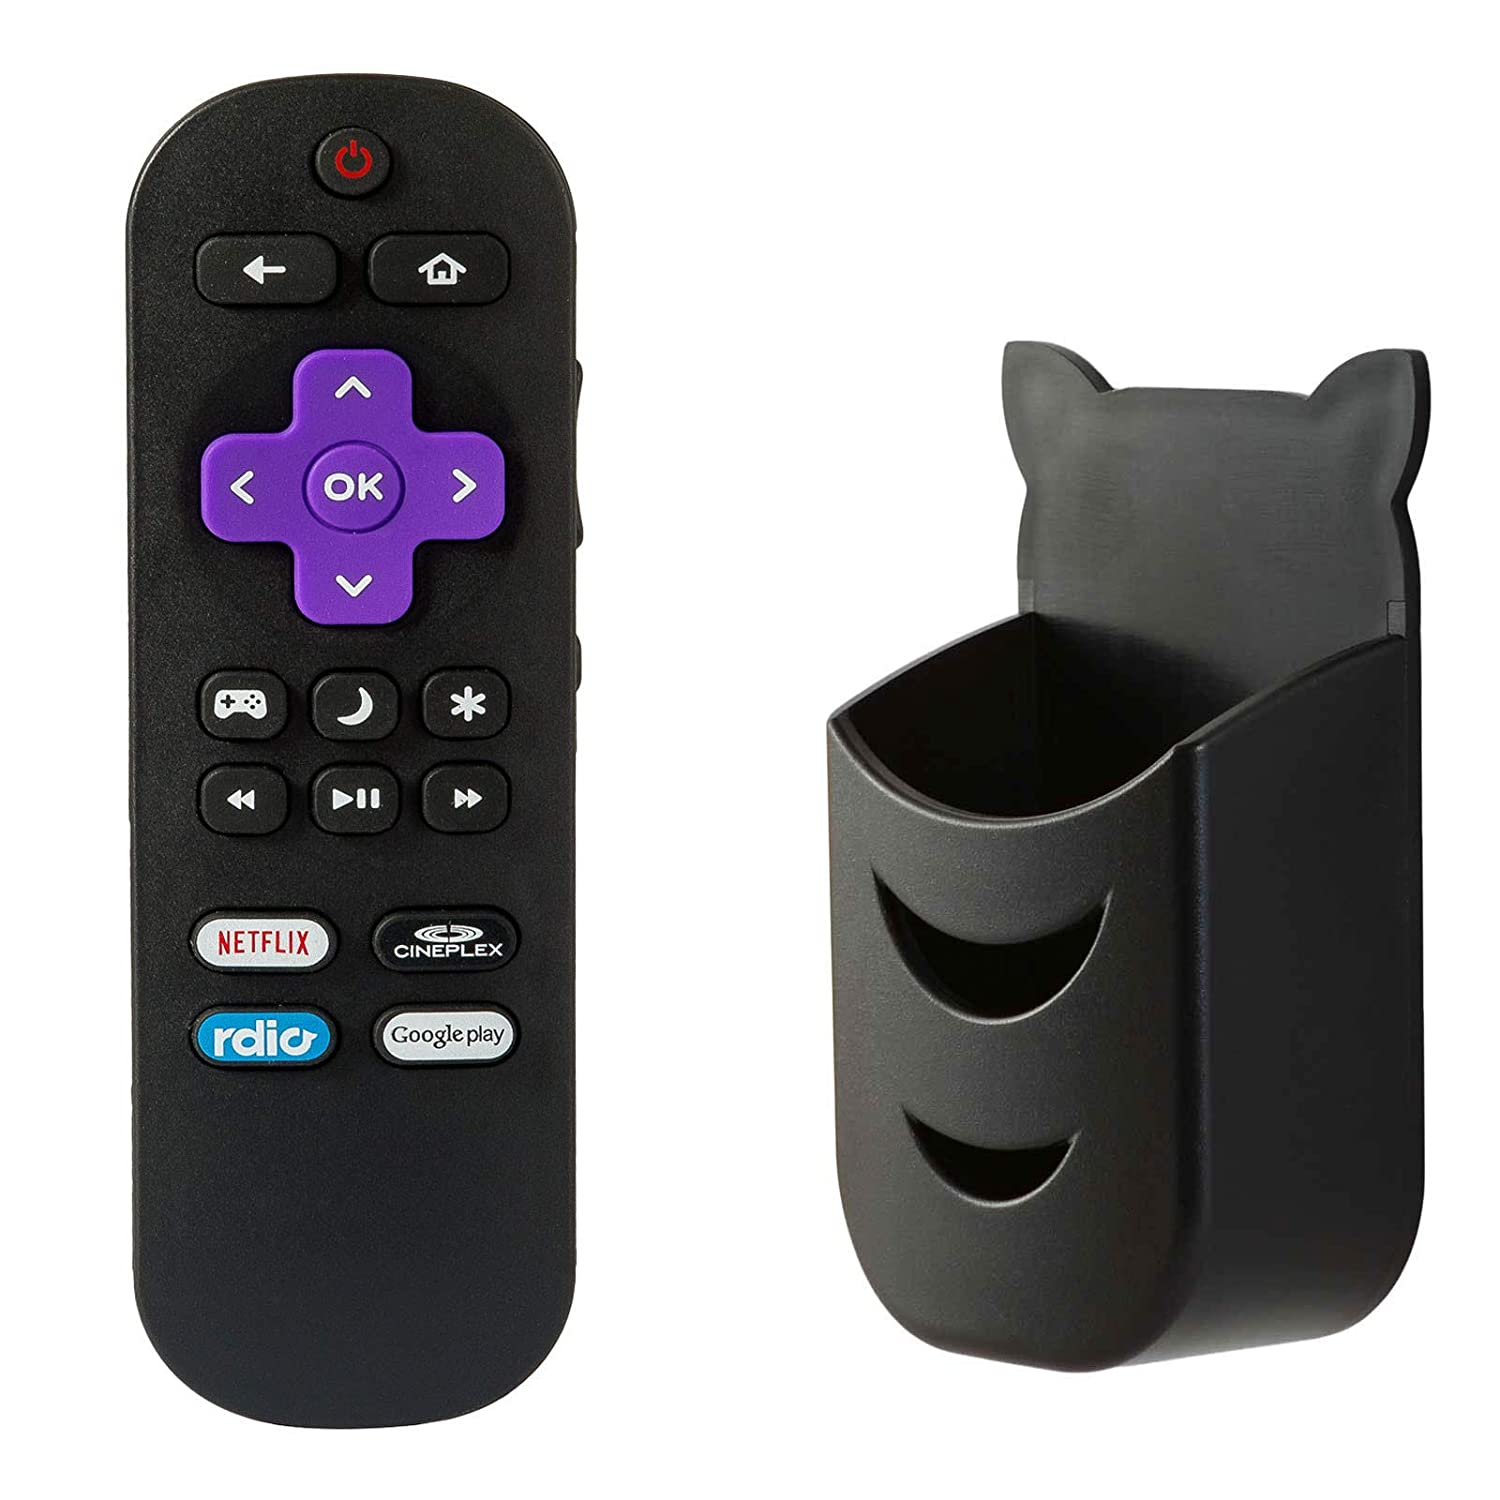 Remote Control fit for Insignia Roku TV NS-40DR420NA16 NS-48DR420NA16  NS-48DR420CA16 NS-40DR420CA16 NS-32DR420NA16 NS-55DR420NA16 TVs with Holder